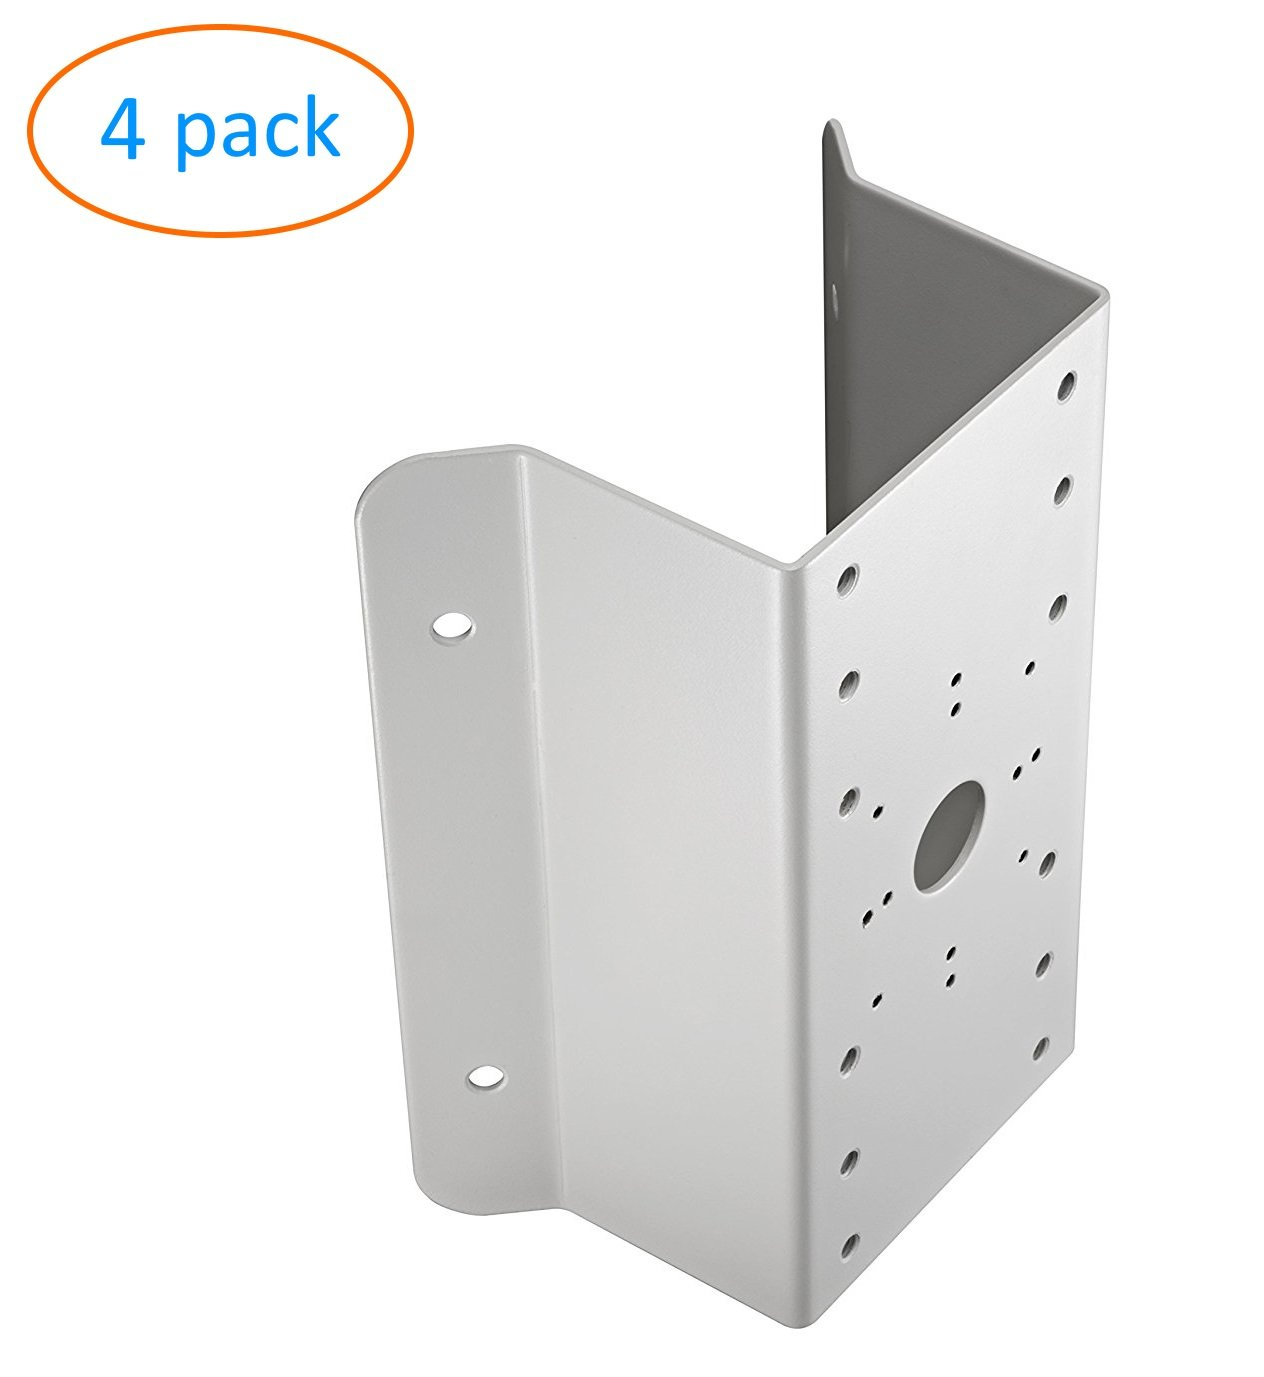 cm DS-1276ZJ Universal Corner Bracket for Most Hikvision Wall Mounts and Cameras - 4 Pack by KENUCO (Image #1)